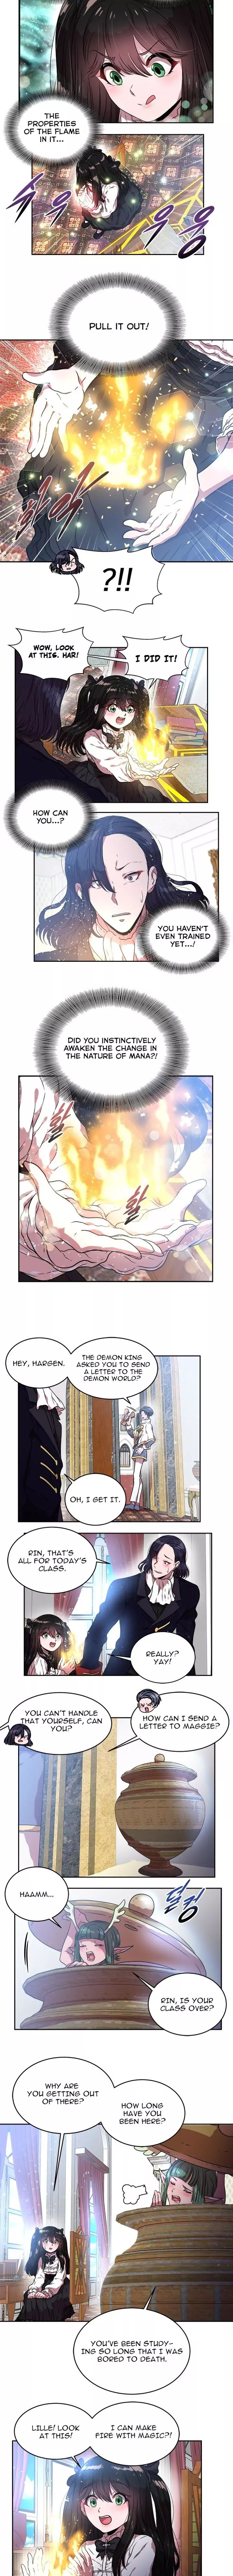 i_was_born_as_the_demon_lords_daughter_21_6